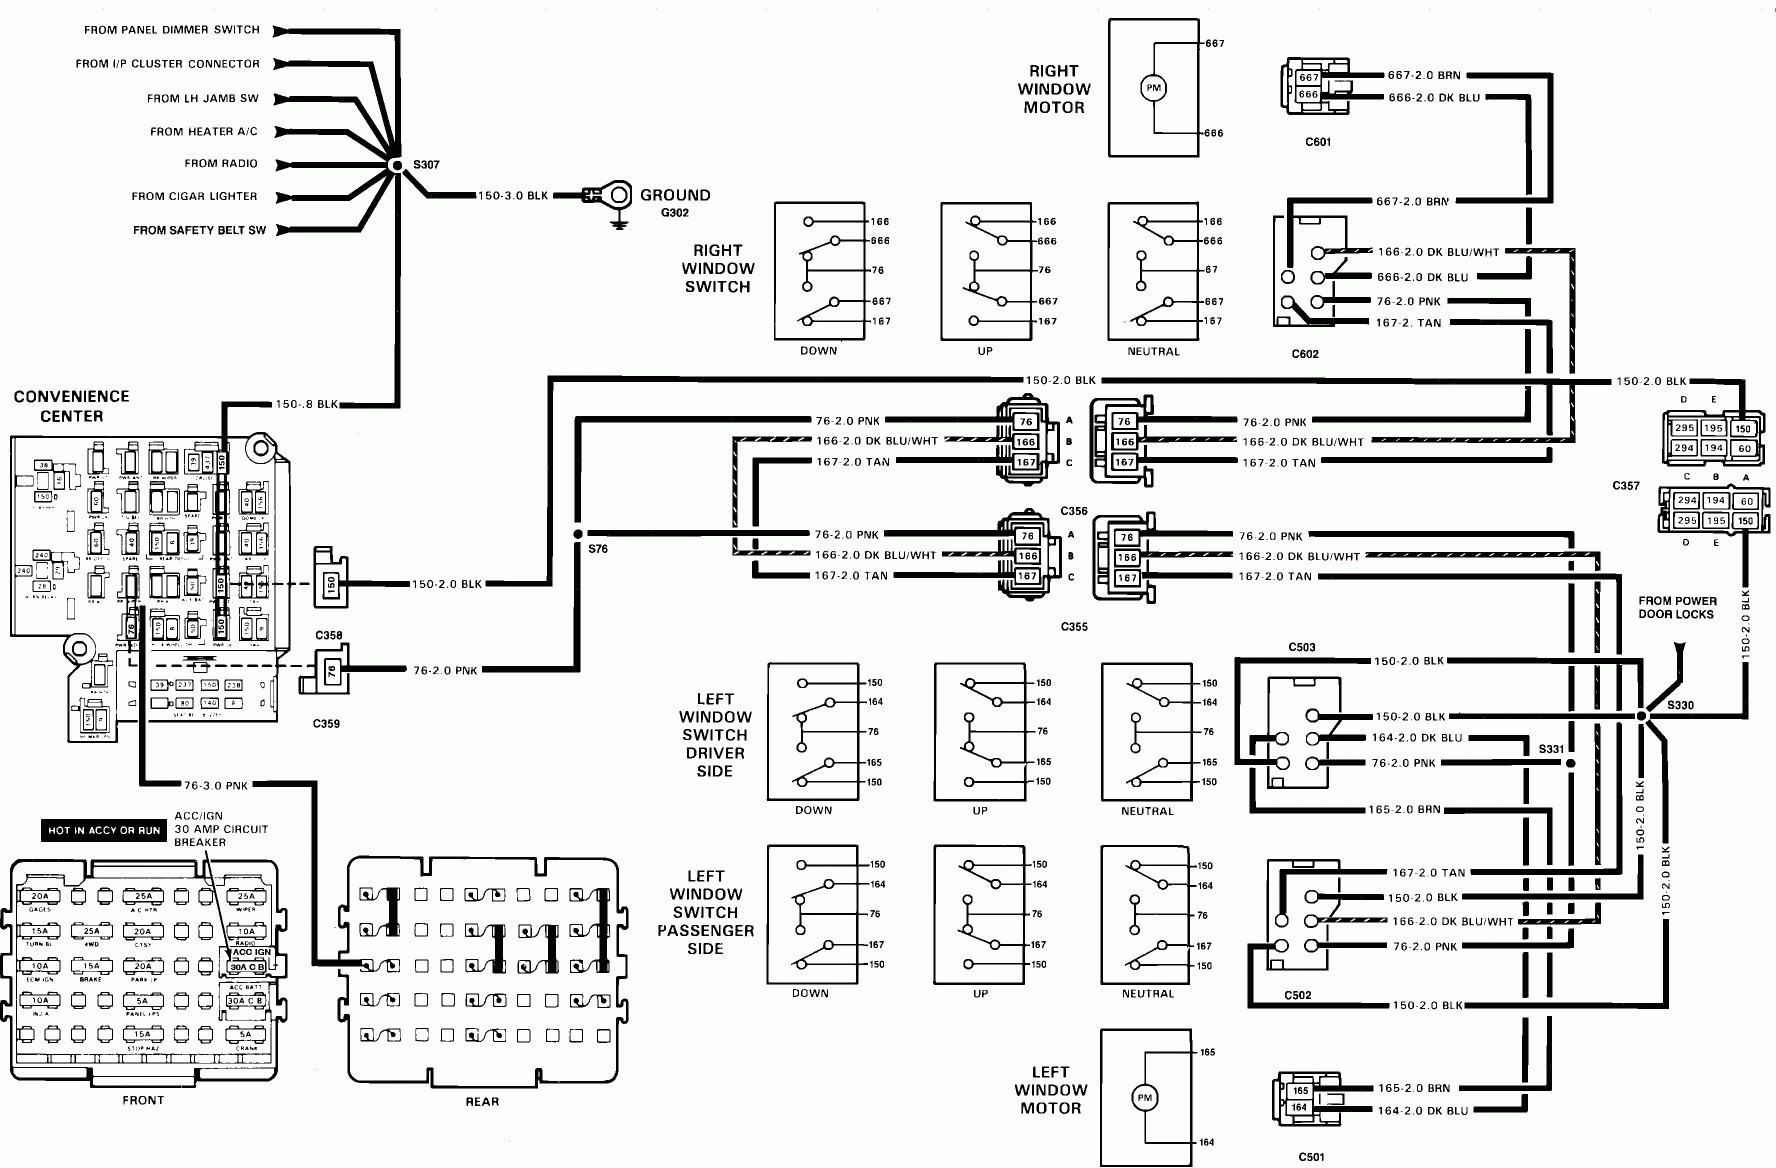 1985 Chevy Wiring Diagram Bose Acoustimass 9 Subwoofer Wire Diagram Bege Wiring Diagram